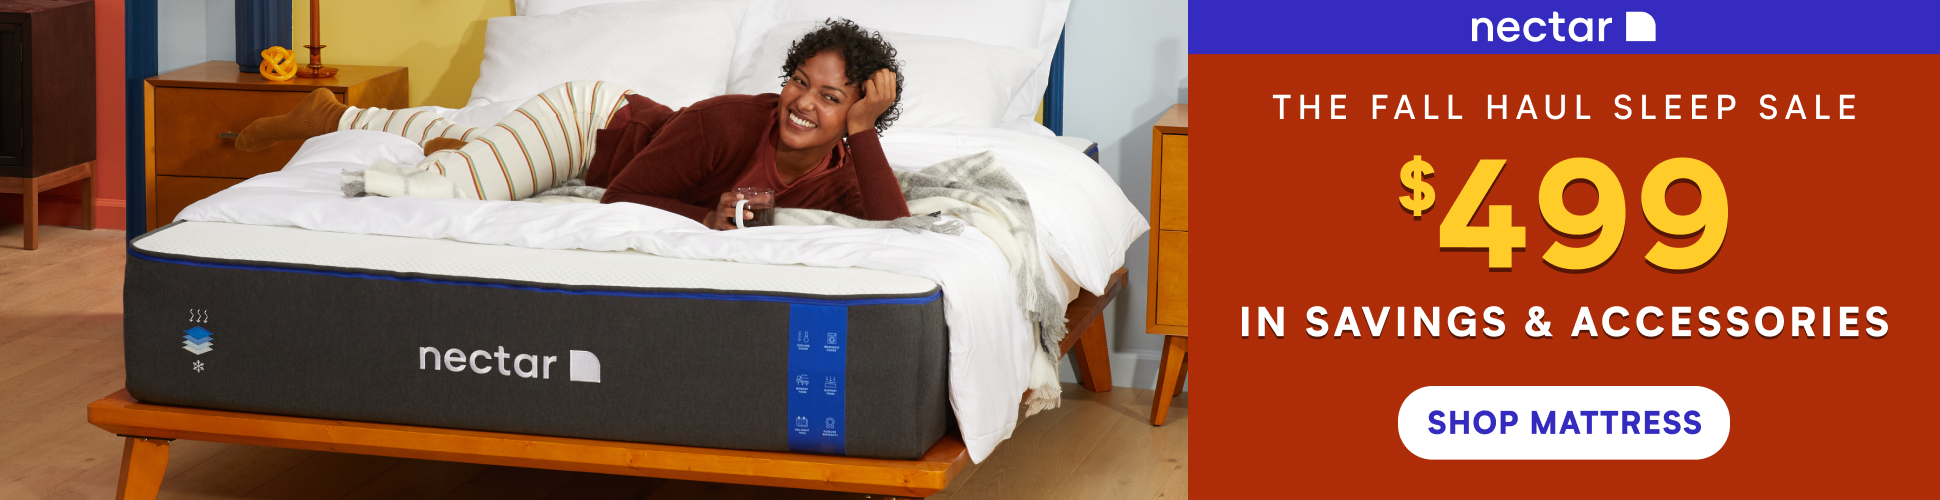 Nectar Mattress- Best Mattress For Stomach Sleepers